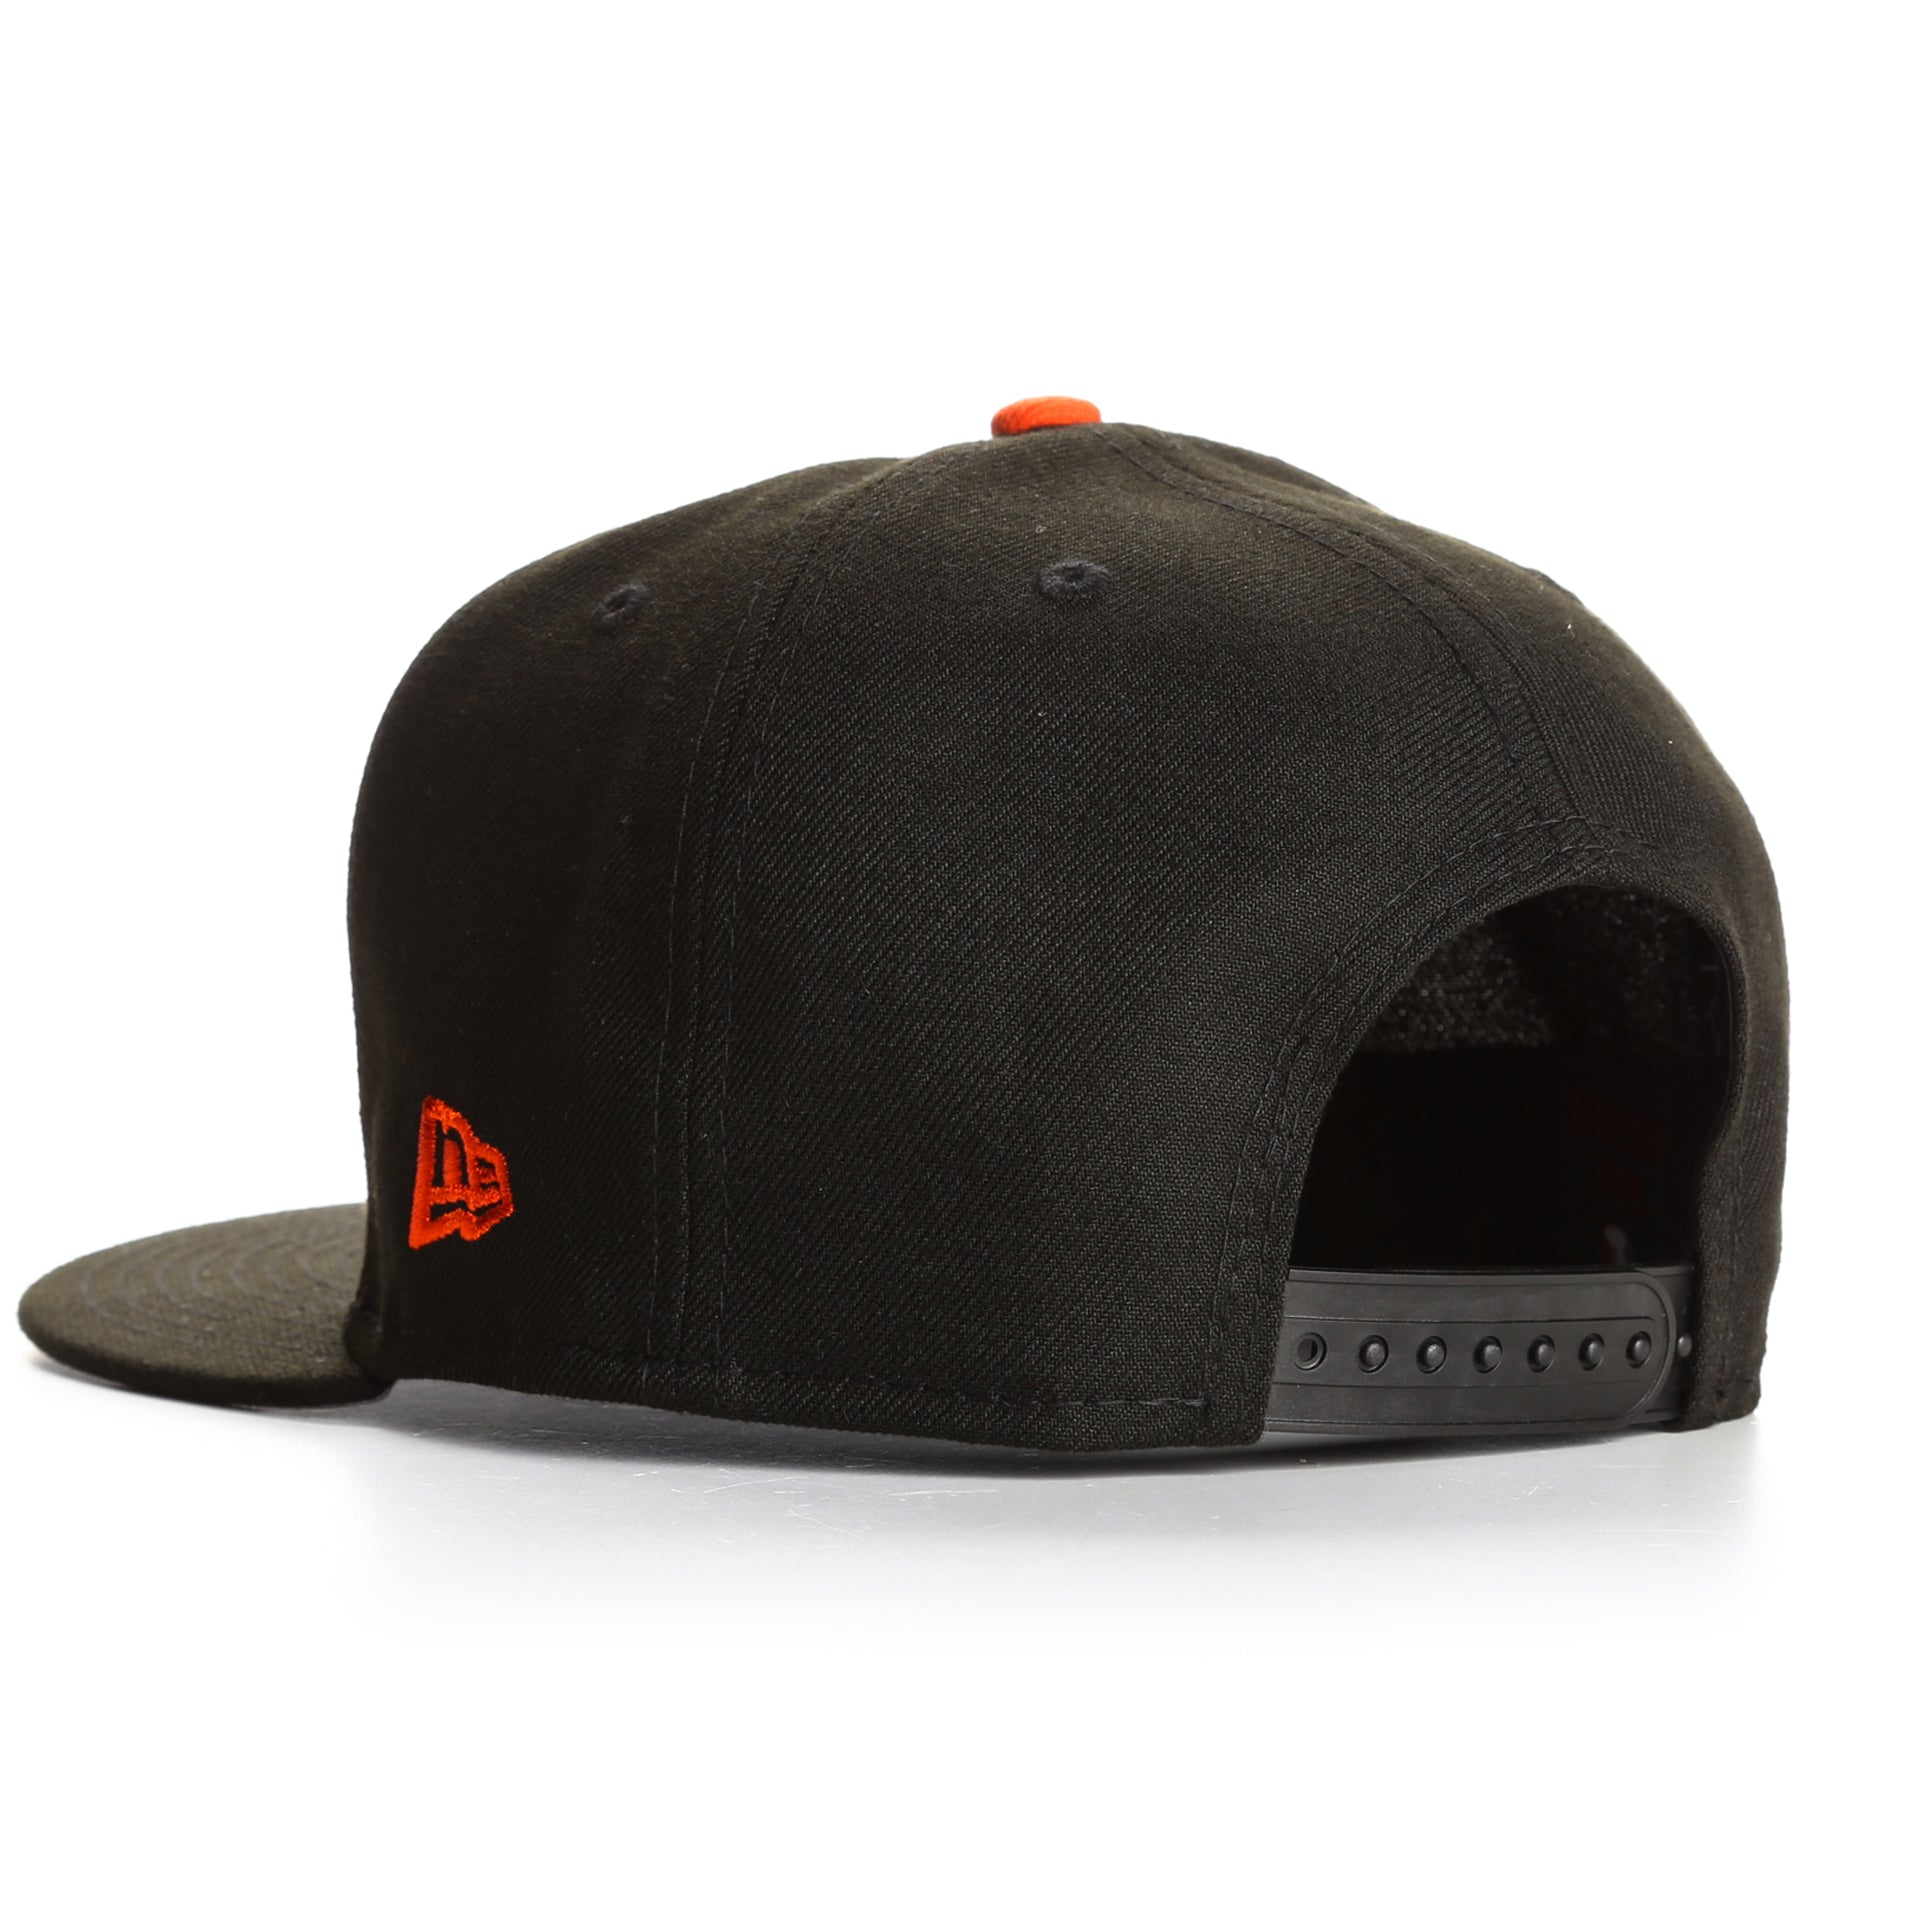 innovative design 0843e ea2d8 New Era 9Fifty San Francisco Giants Snapback - Black